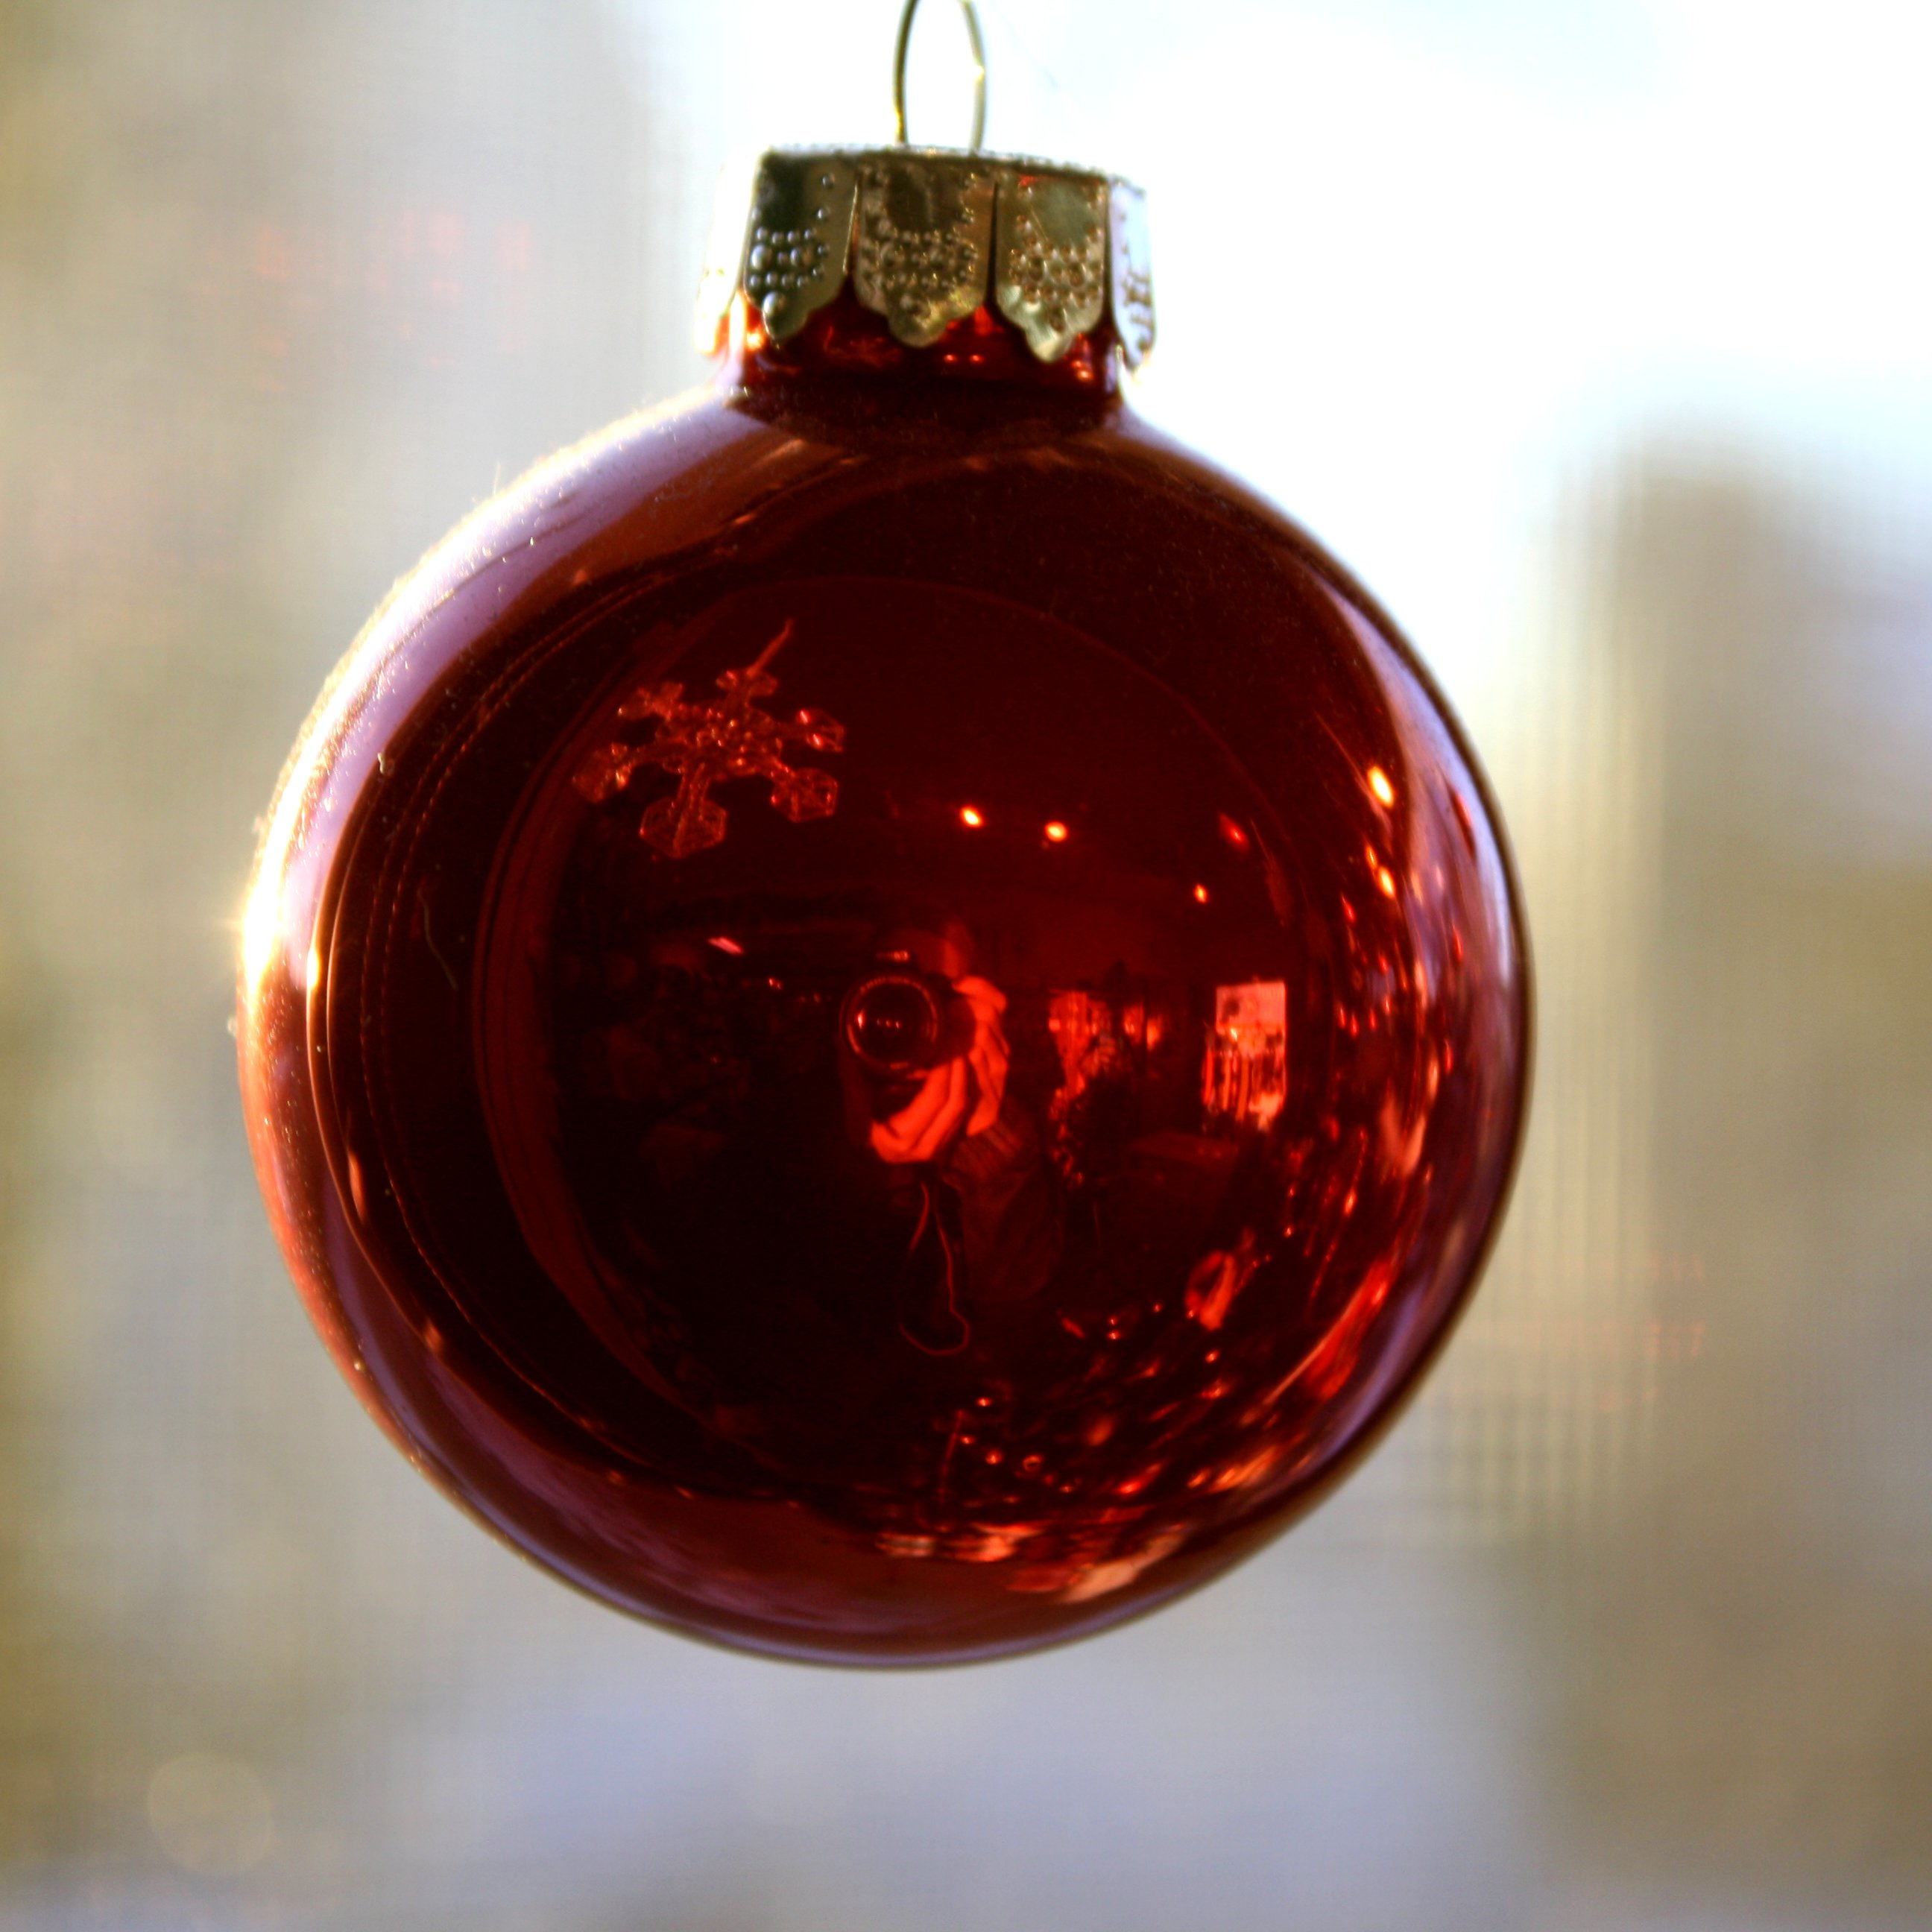 Red Christmas Ball Ornament Picture | Free Photograph ...